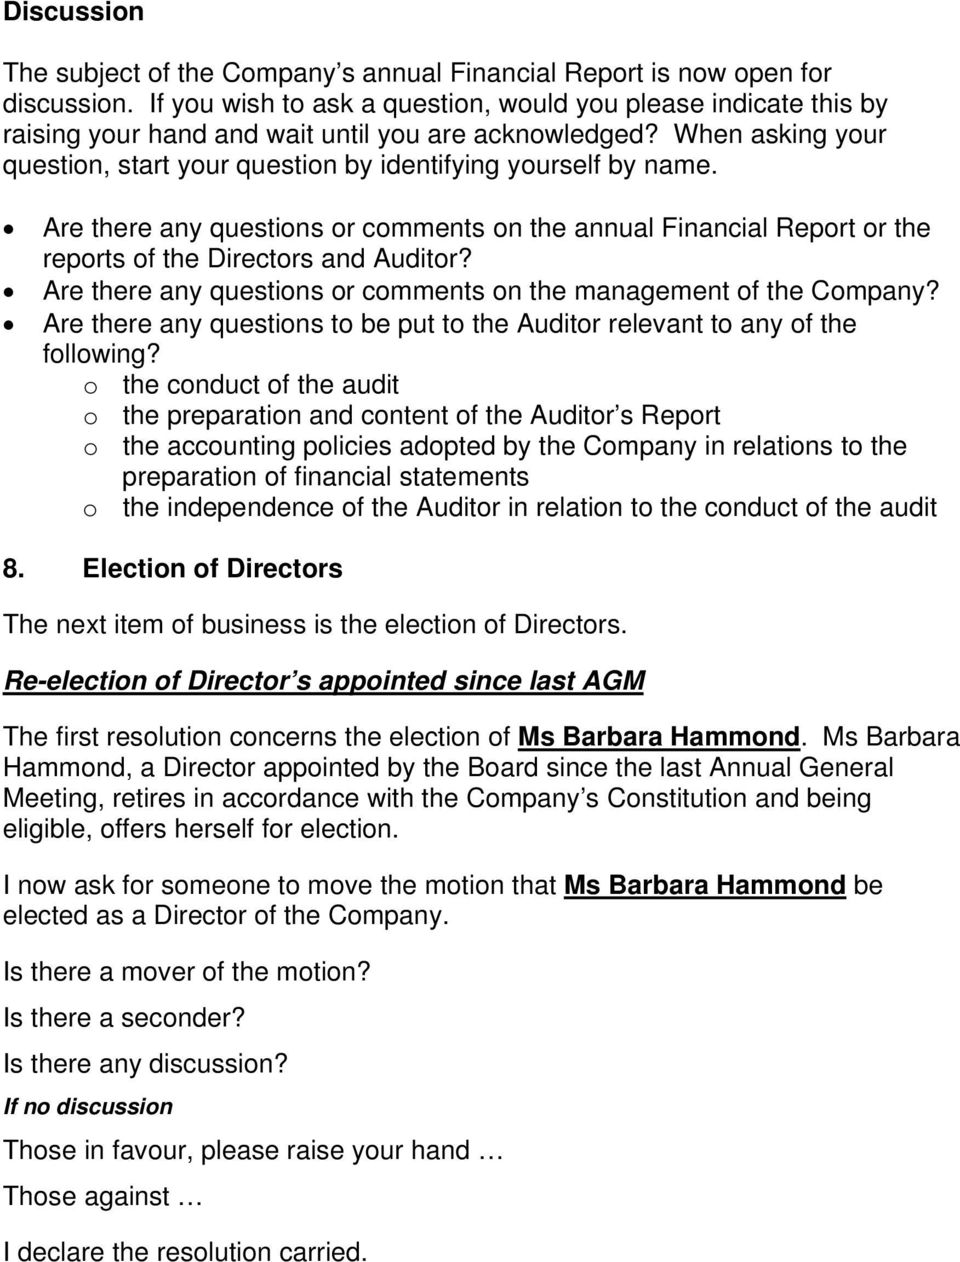 Are there any questions or comments on the annual Financial Report or the reports of the Directors and Auditor? Are there any questions or comments on the management of the Company?